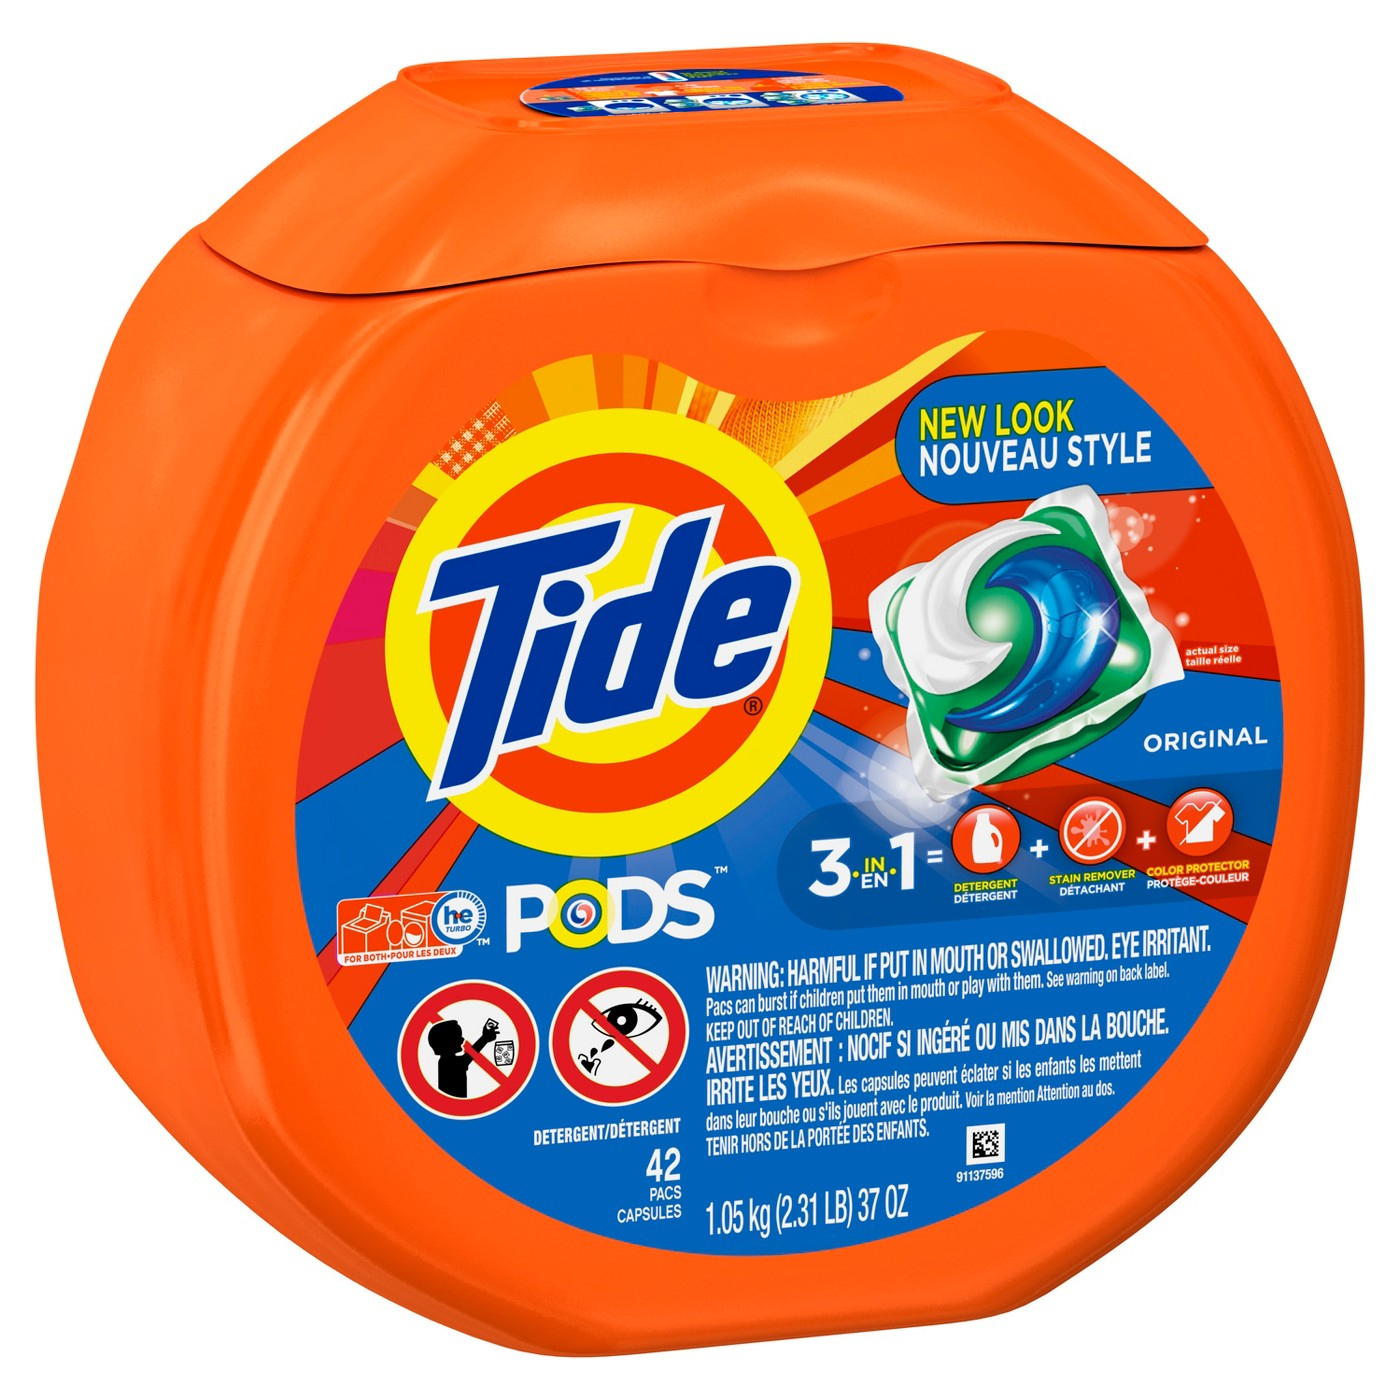 Tide PODS Original Liquid Laundry Detergent Pods - 42ct - image 1 of 2